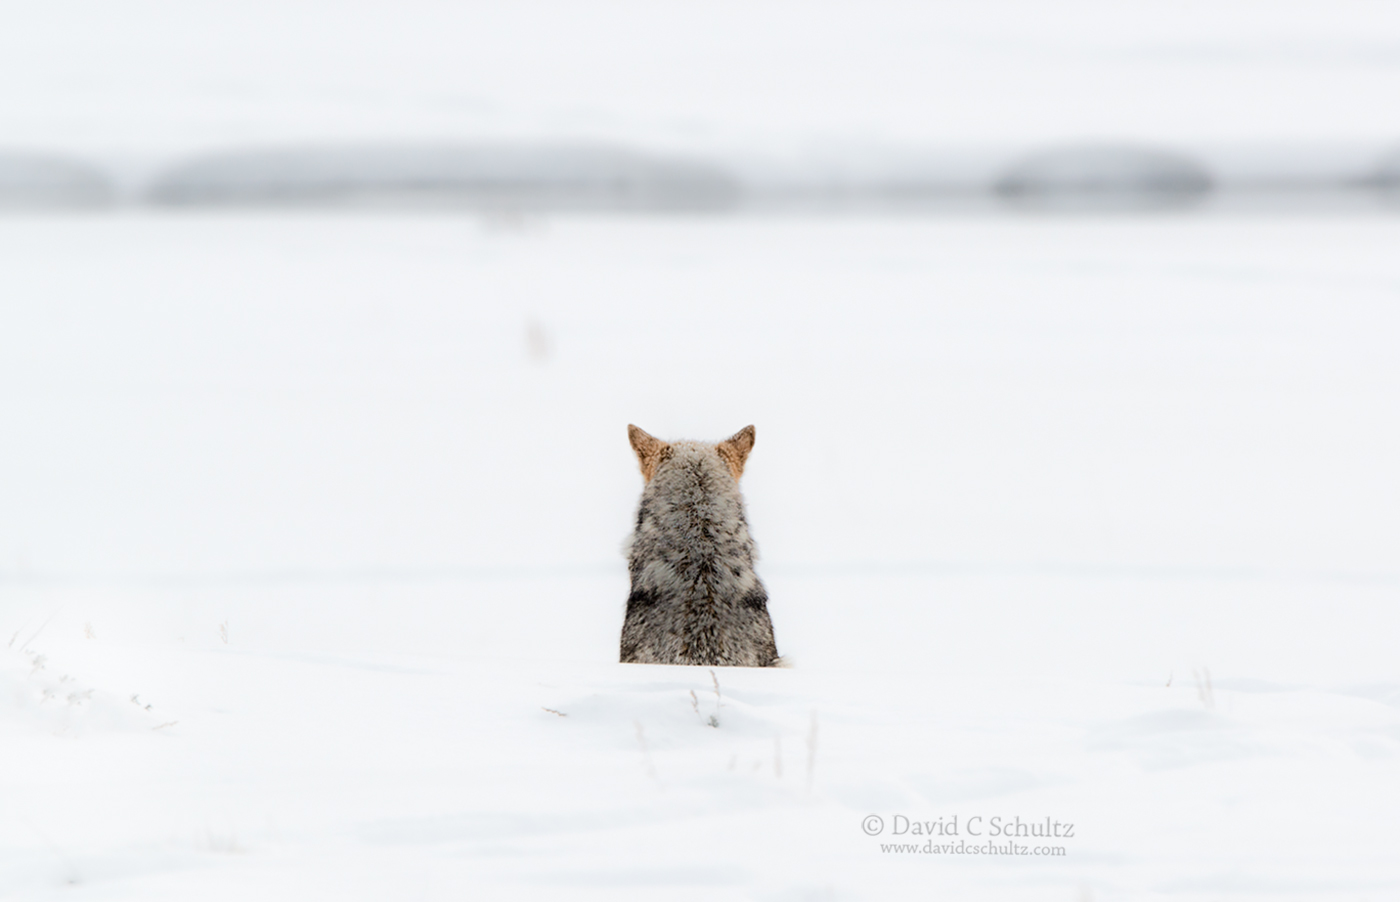 coyote-winter-yellowstone-161-3120